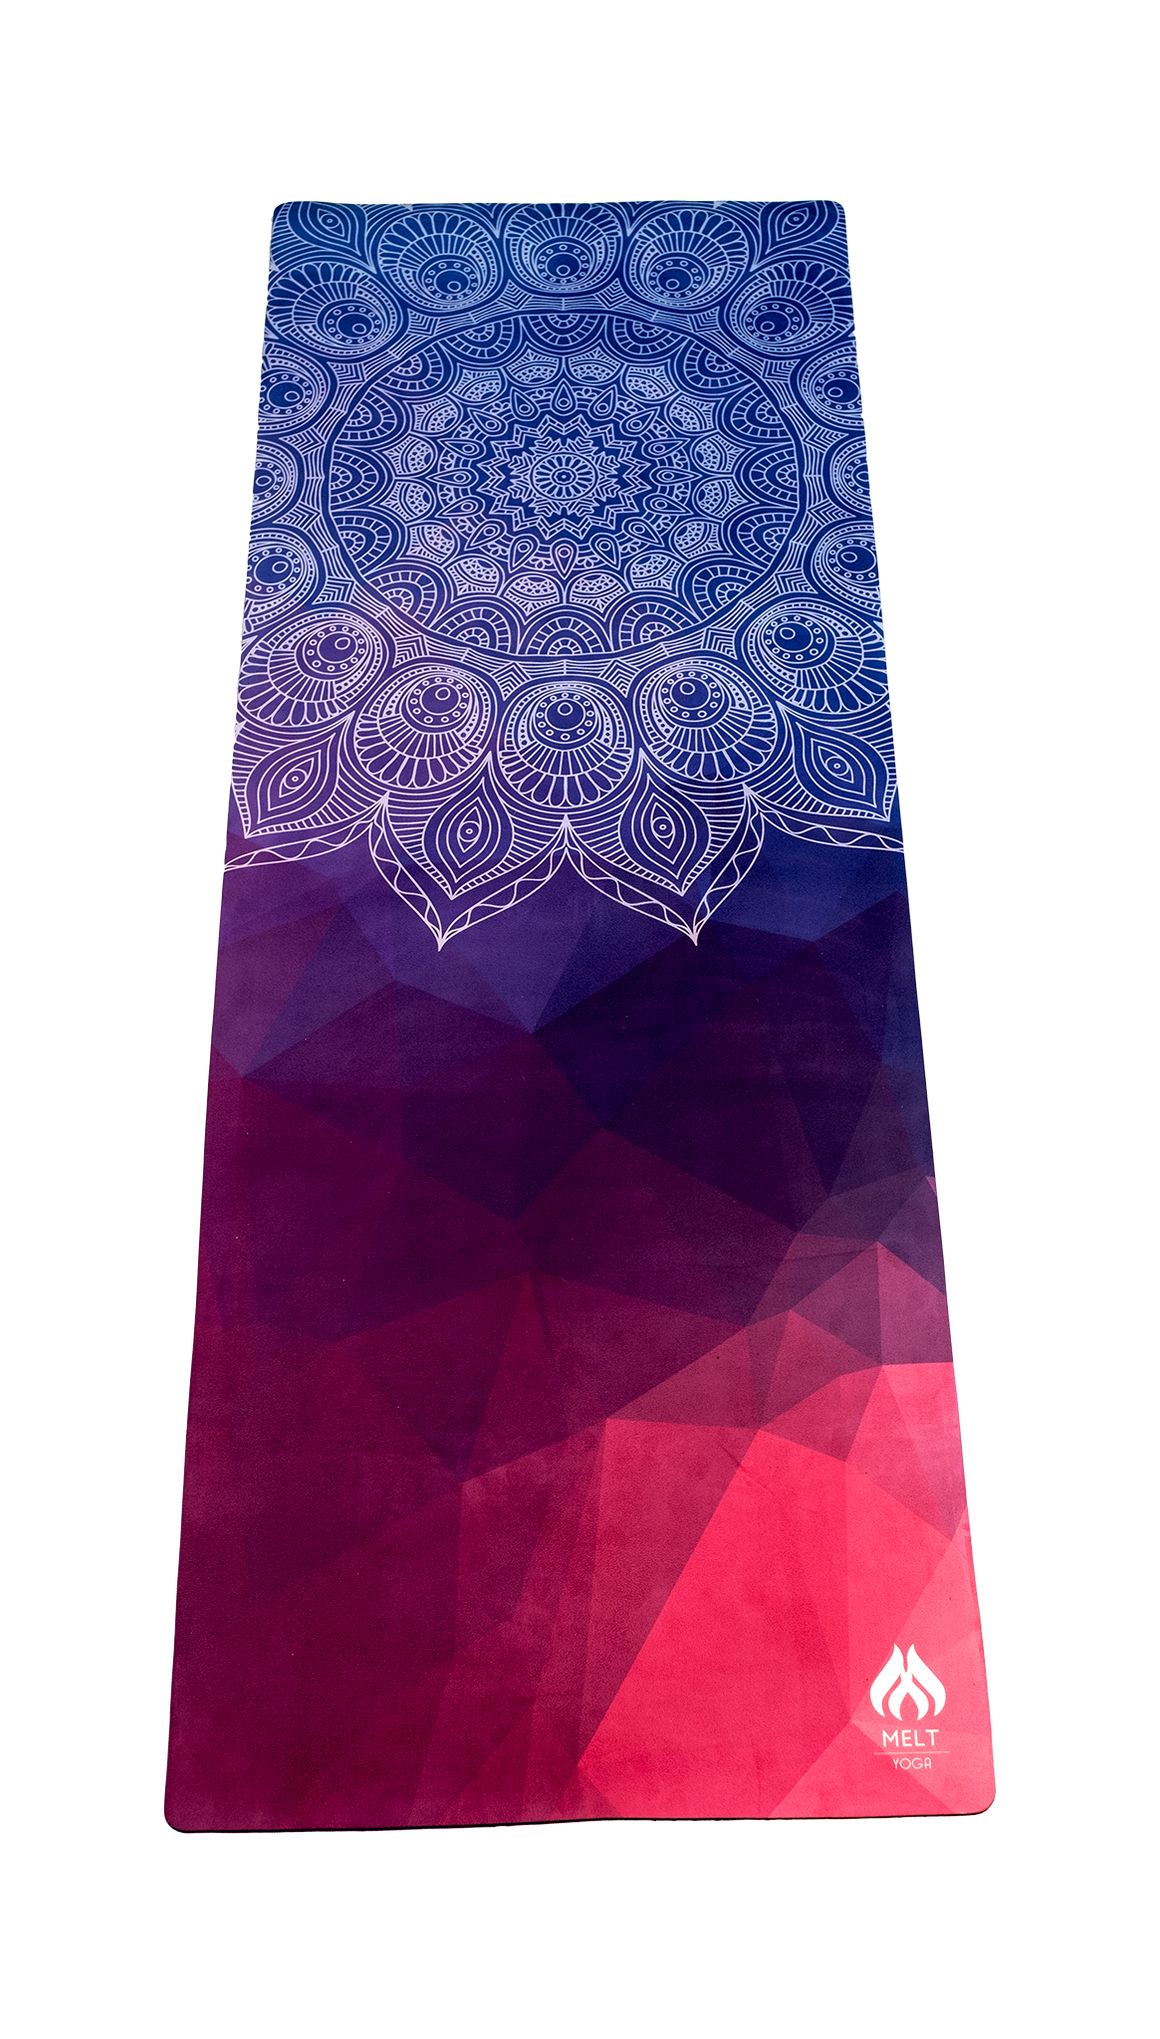 Magic Mandala Yoga Mat